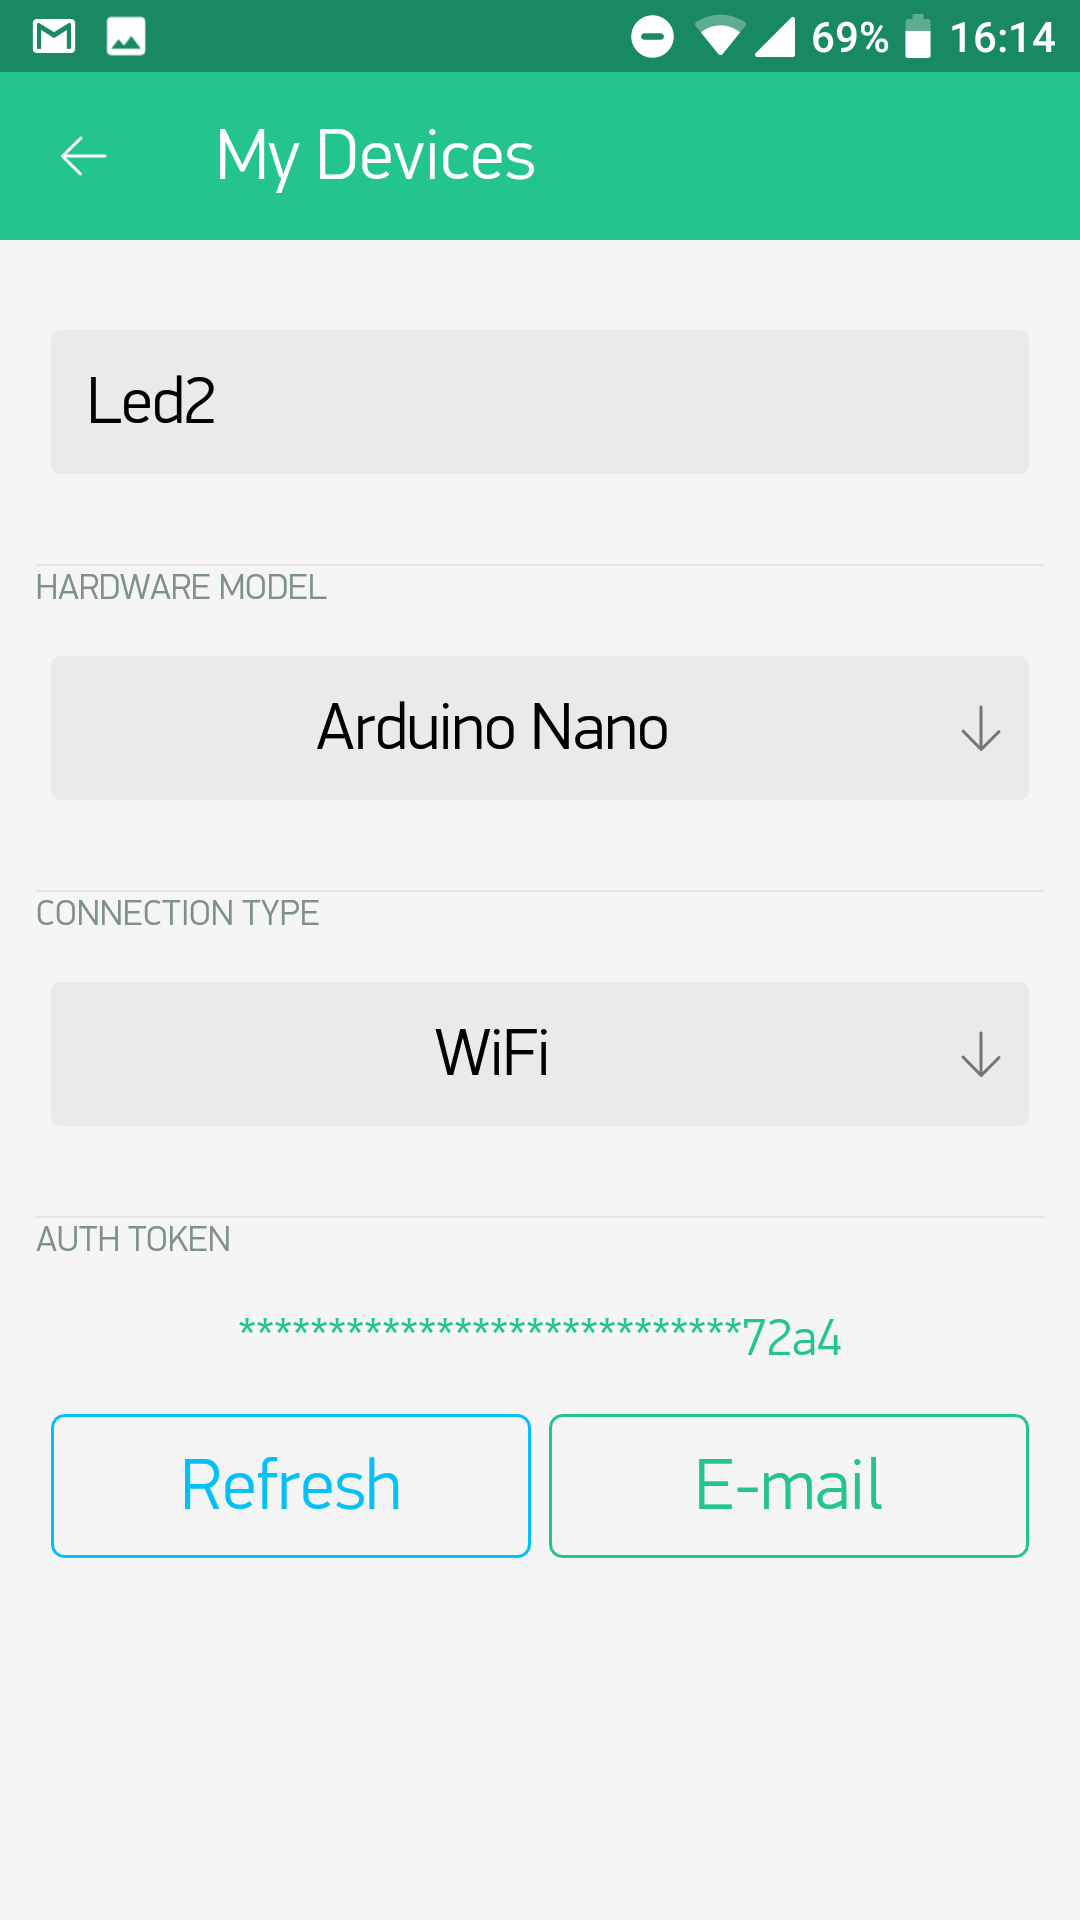 Connect An Esp8266 Module To Arduino Nano And Control It With Wiring In The Blynk App Change Project Settings Reflect New Way We Cloud Via Wifi